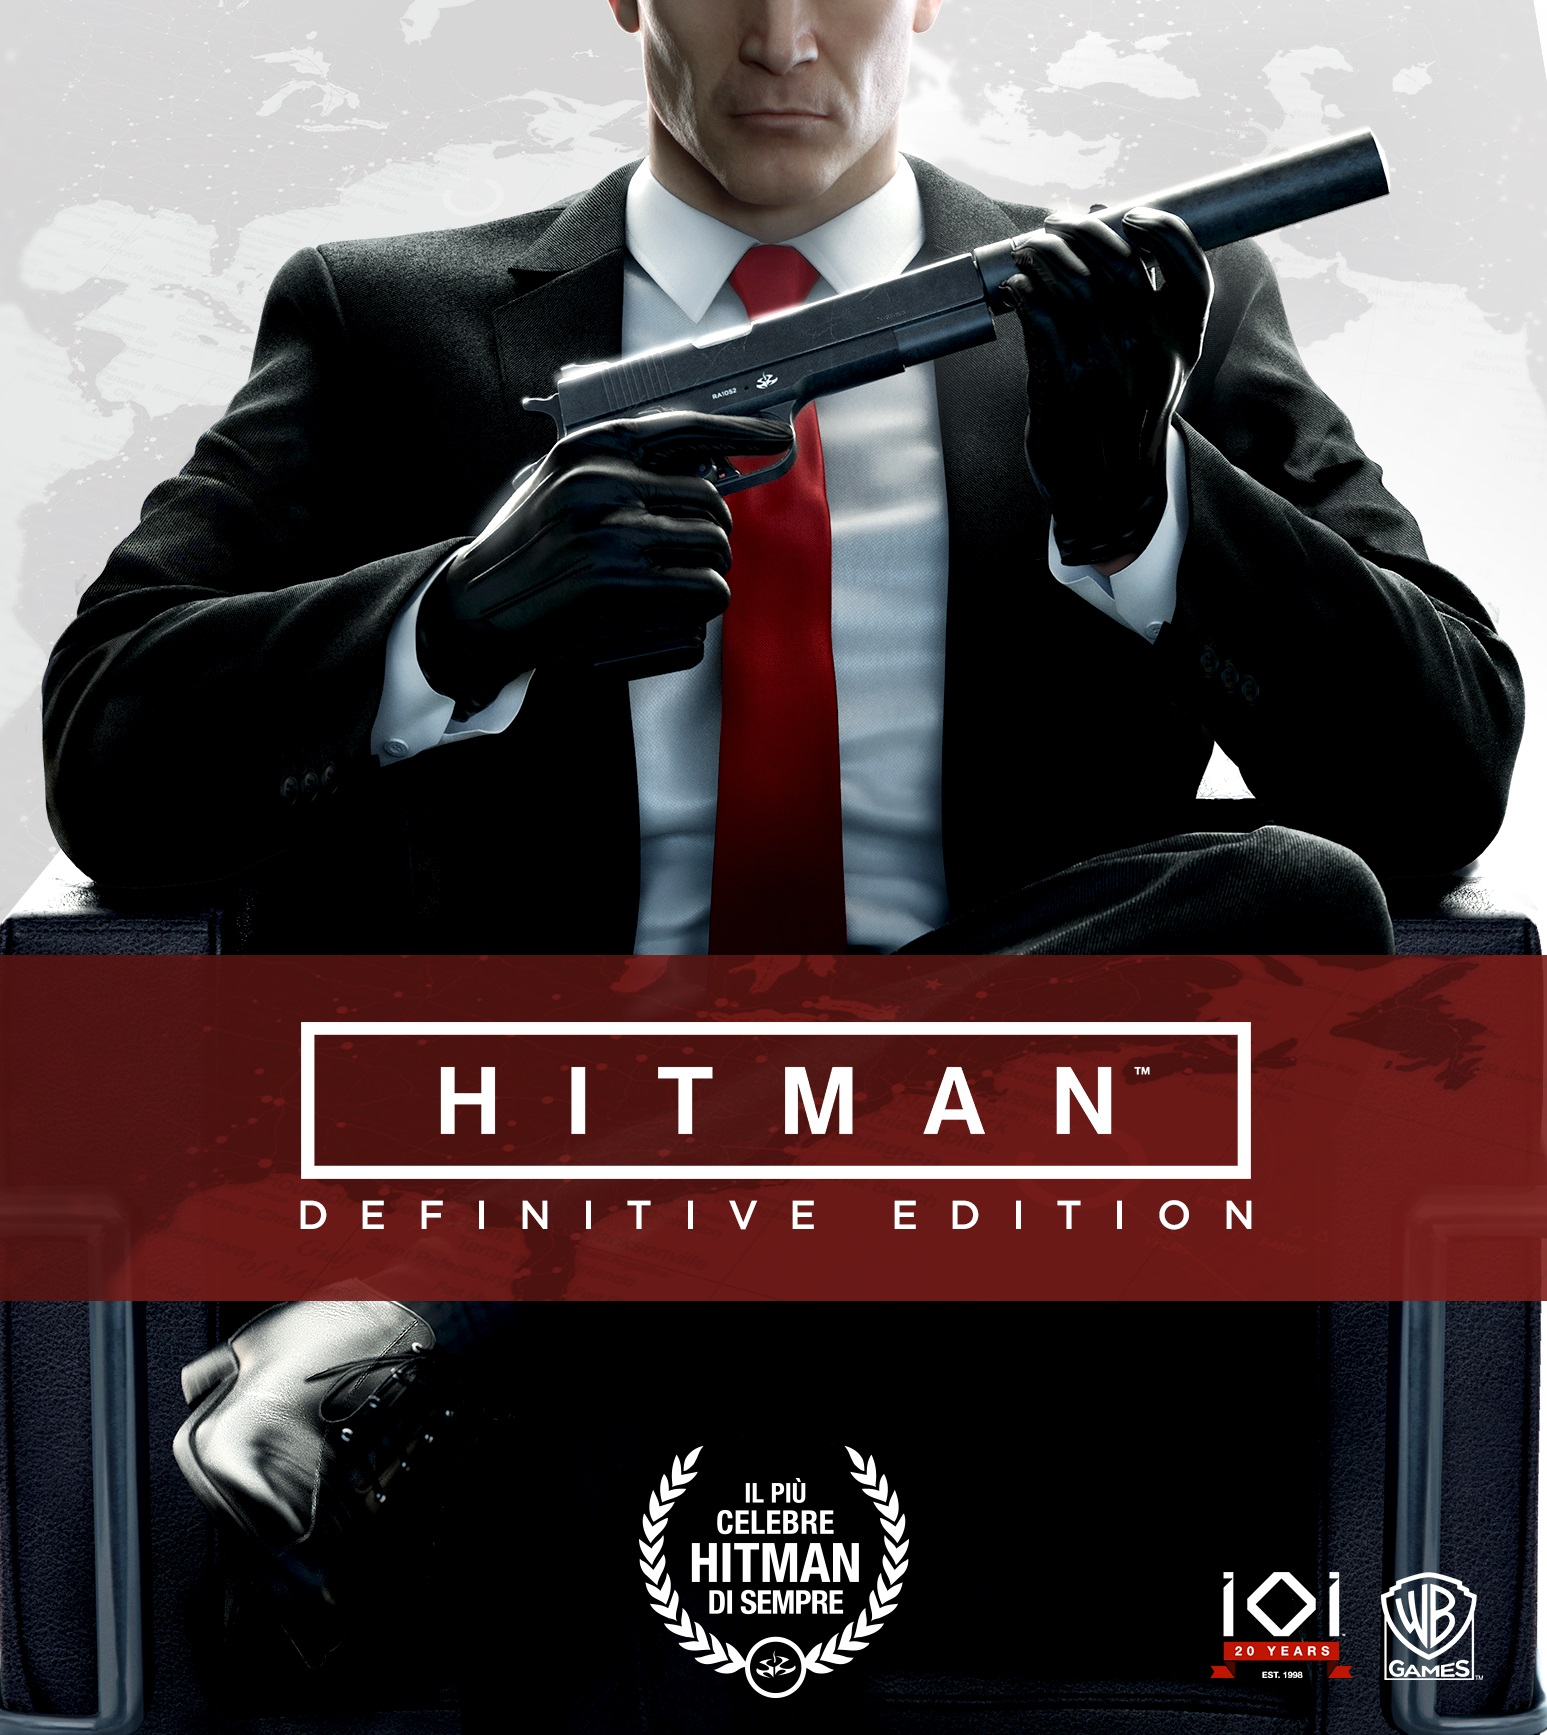 HITAMAN Definitive Edition